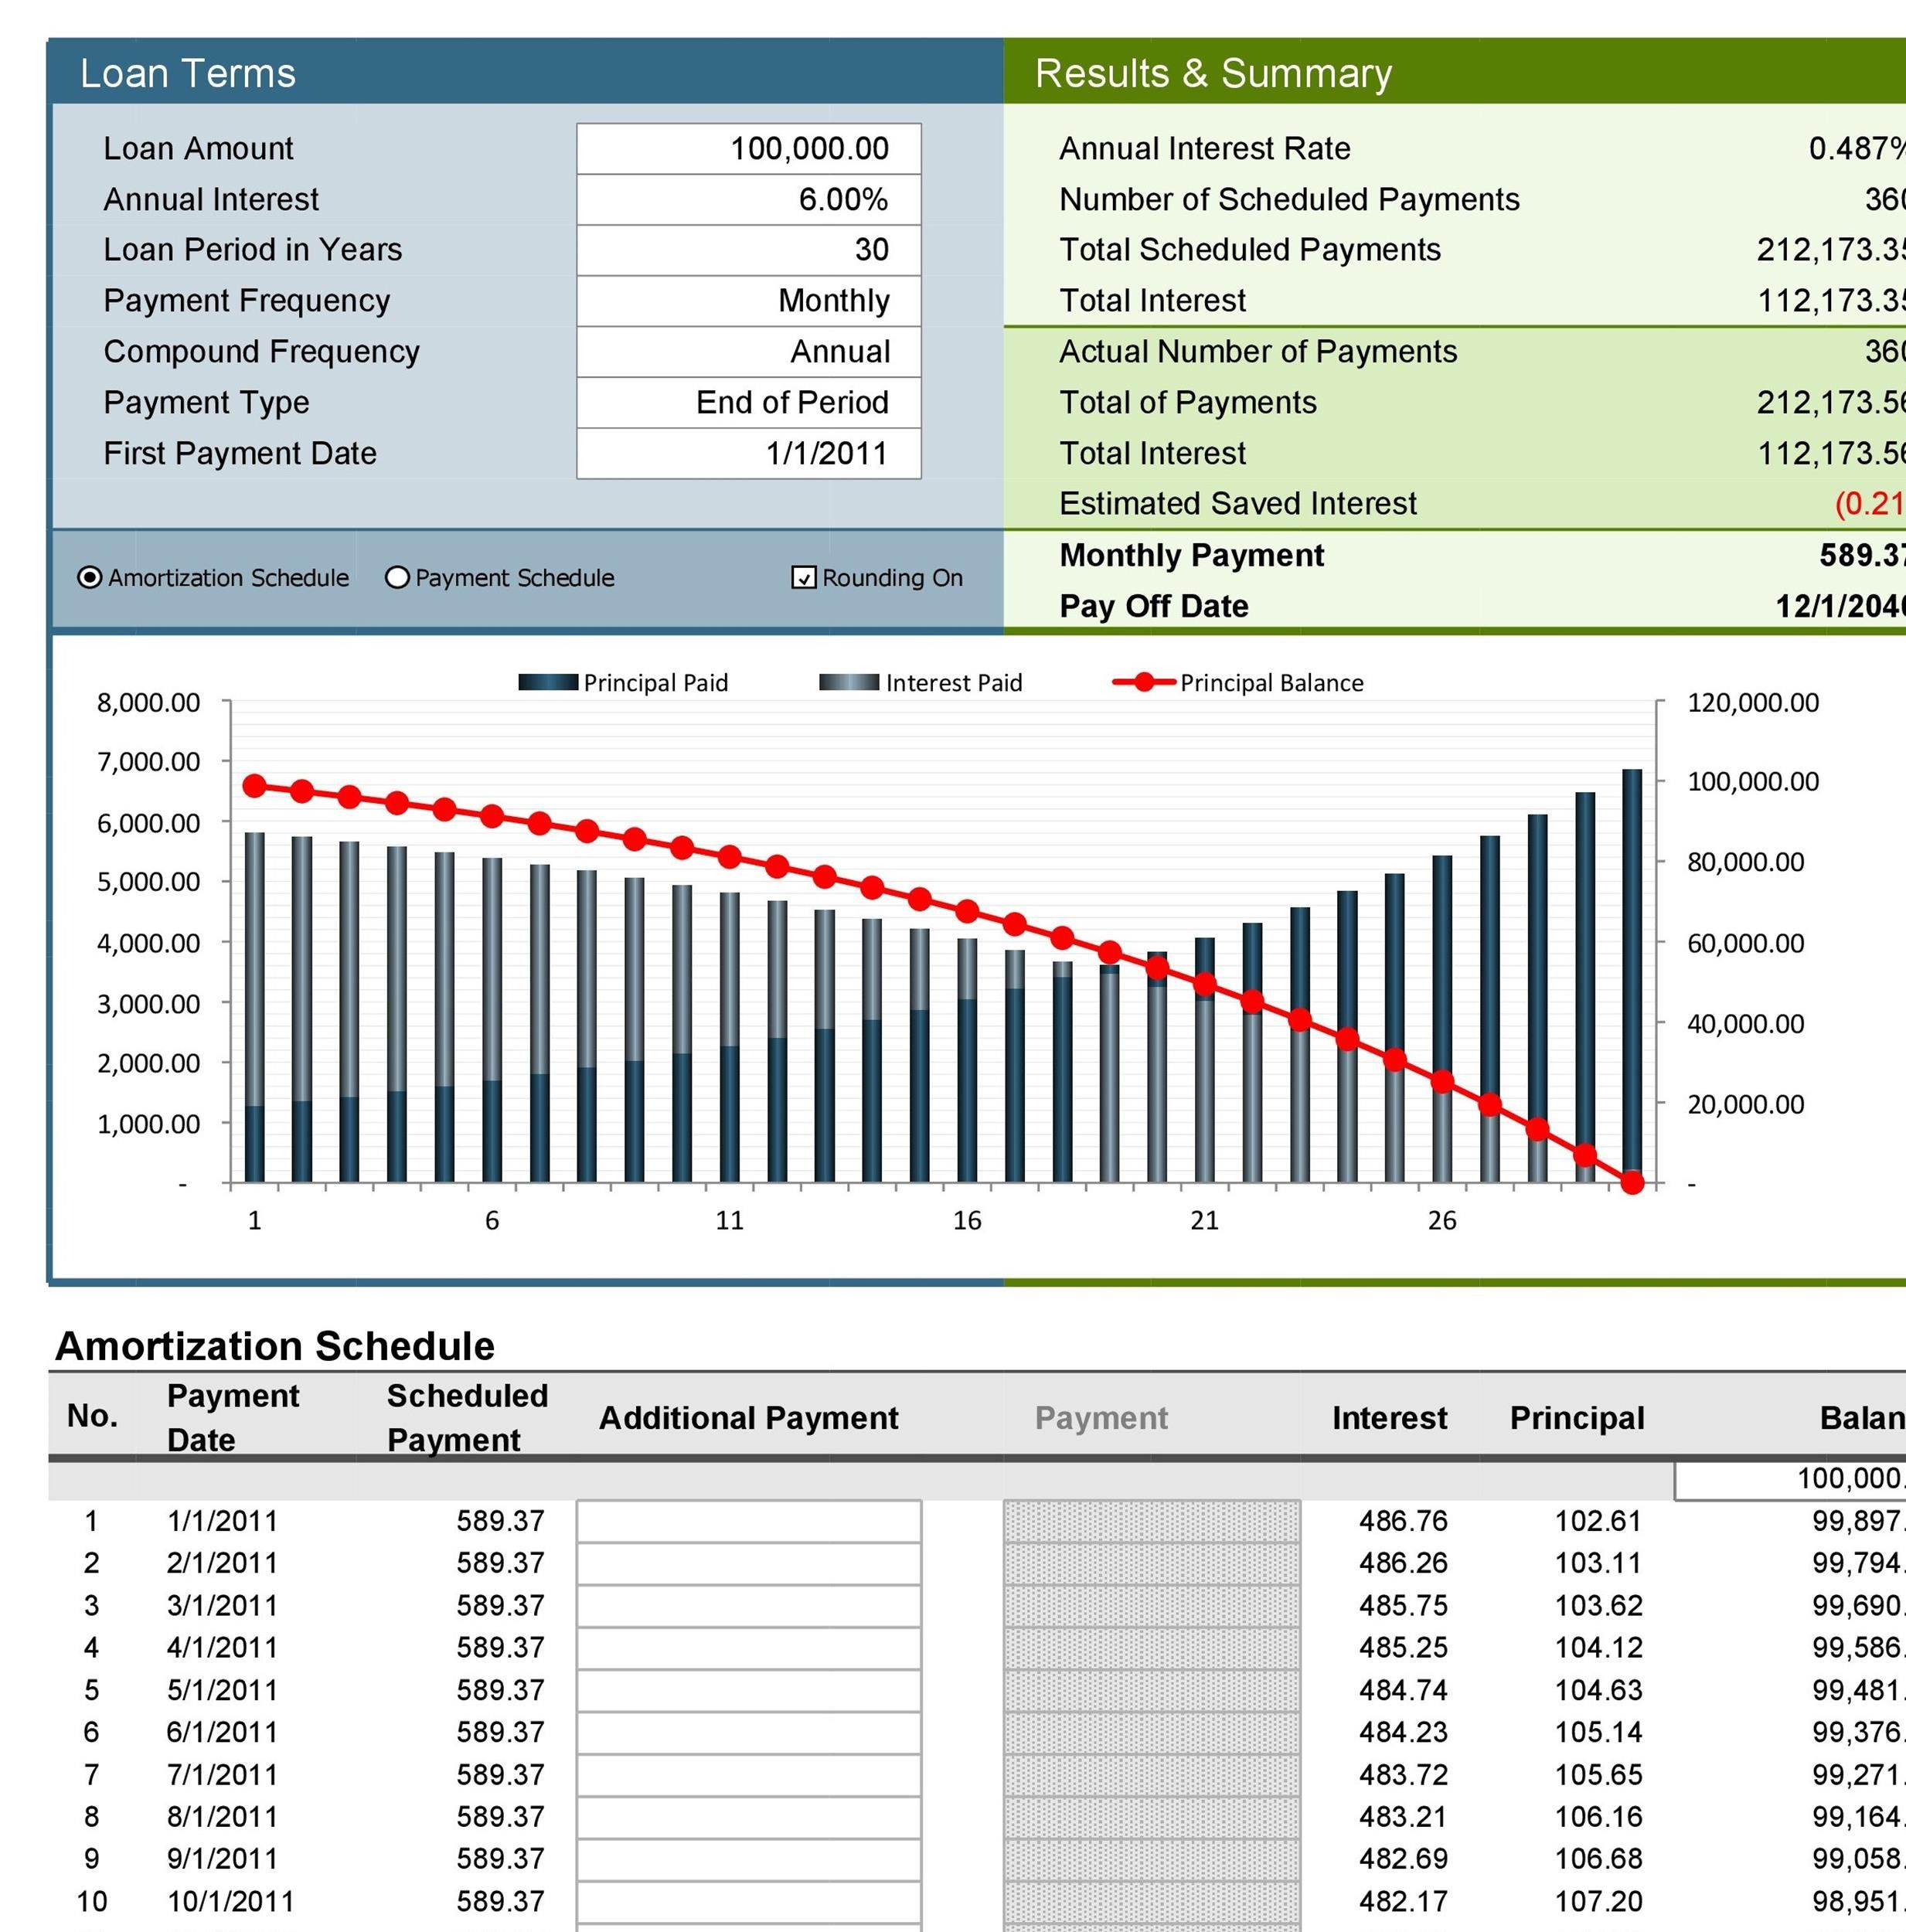 008 Unique Loan Amortization Excel Template Picture  Schedule 2010 Free 2007Full